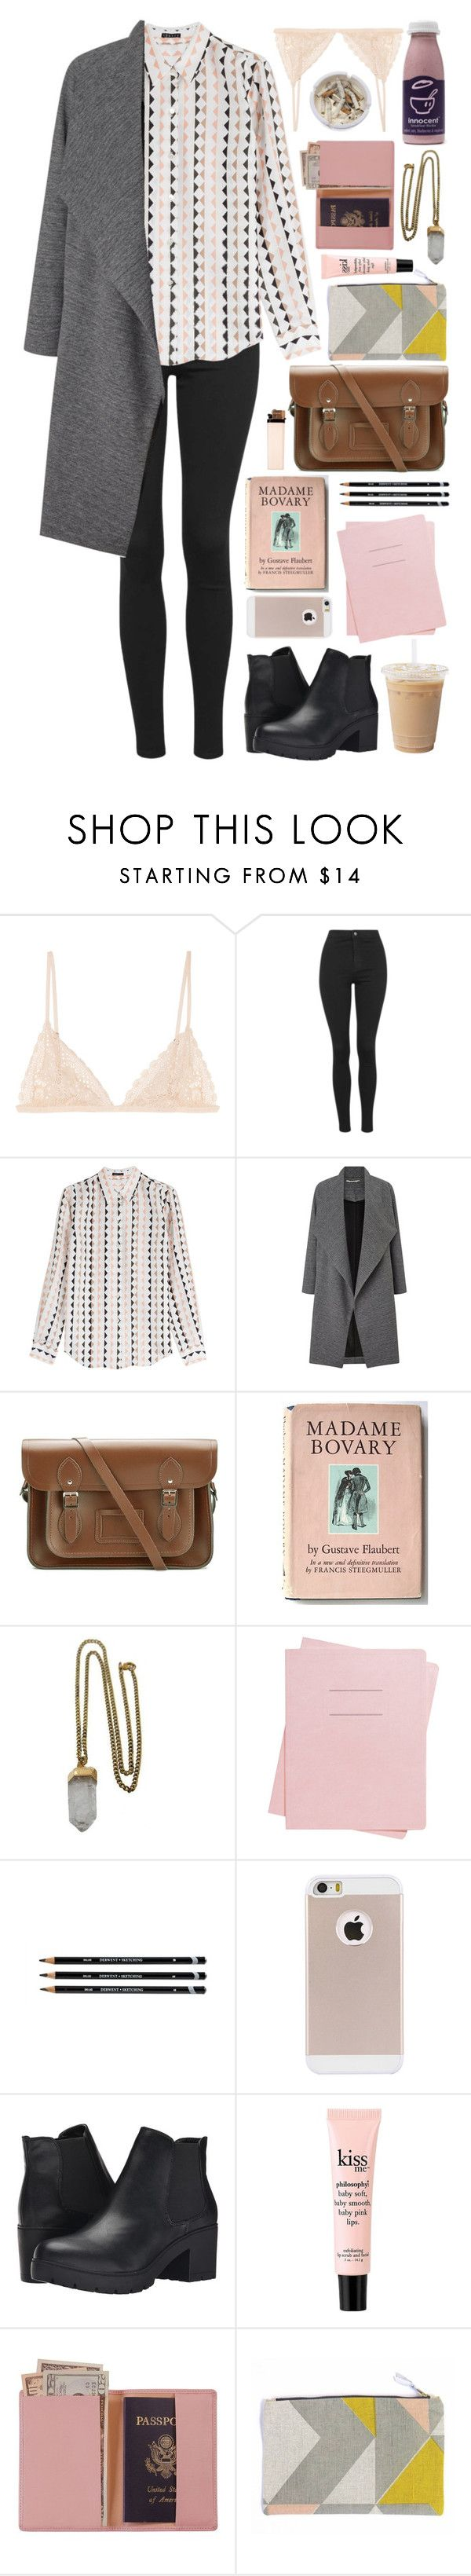 """""""220316"""" by rosemarykate ❤ liked on Polyvore featuring Kiki de Montparnasse, Topshop, Theory, Miss Selfridge, The Cambridge Satchel Company, Lacey Ryan, Shinola, Steve Madden, Ash and philosophy"""